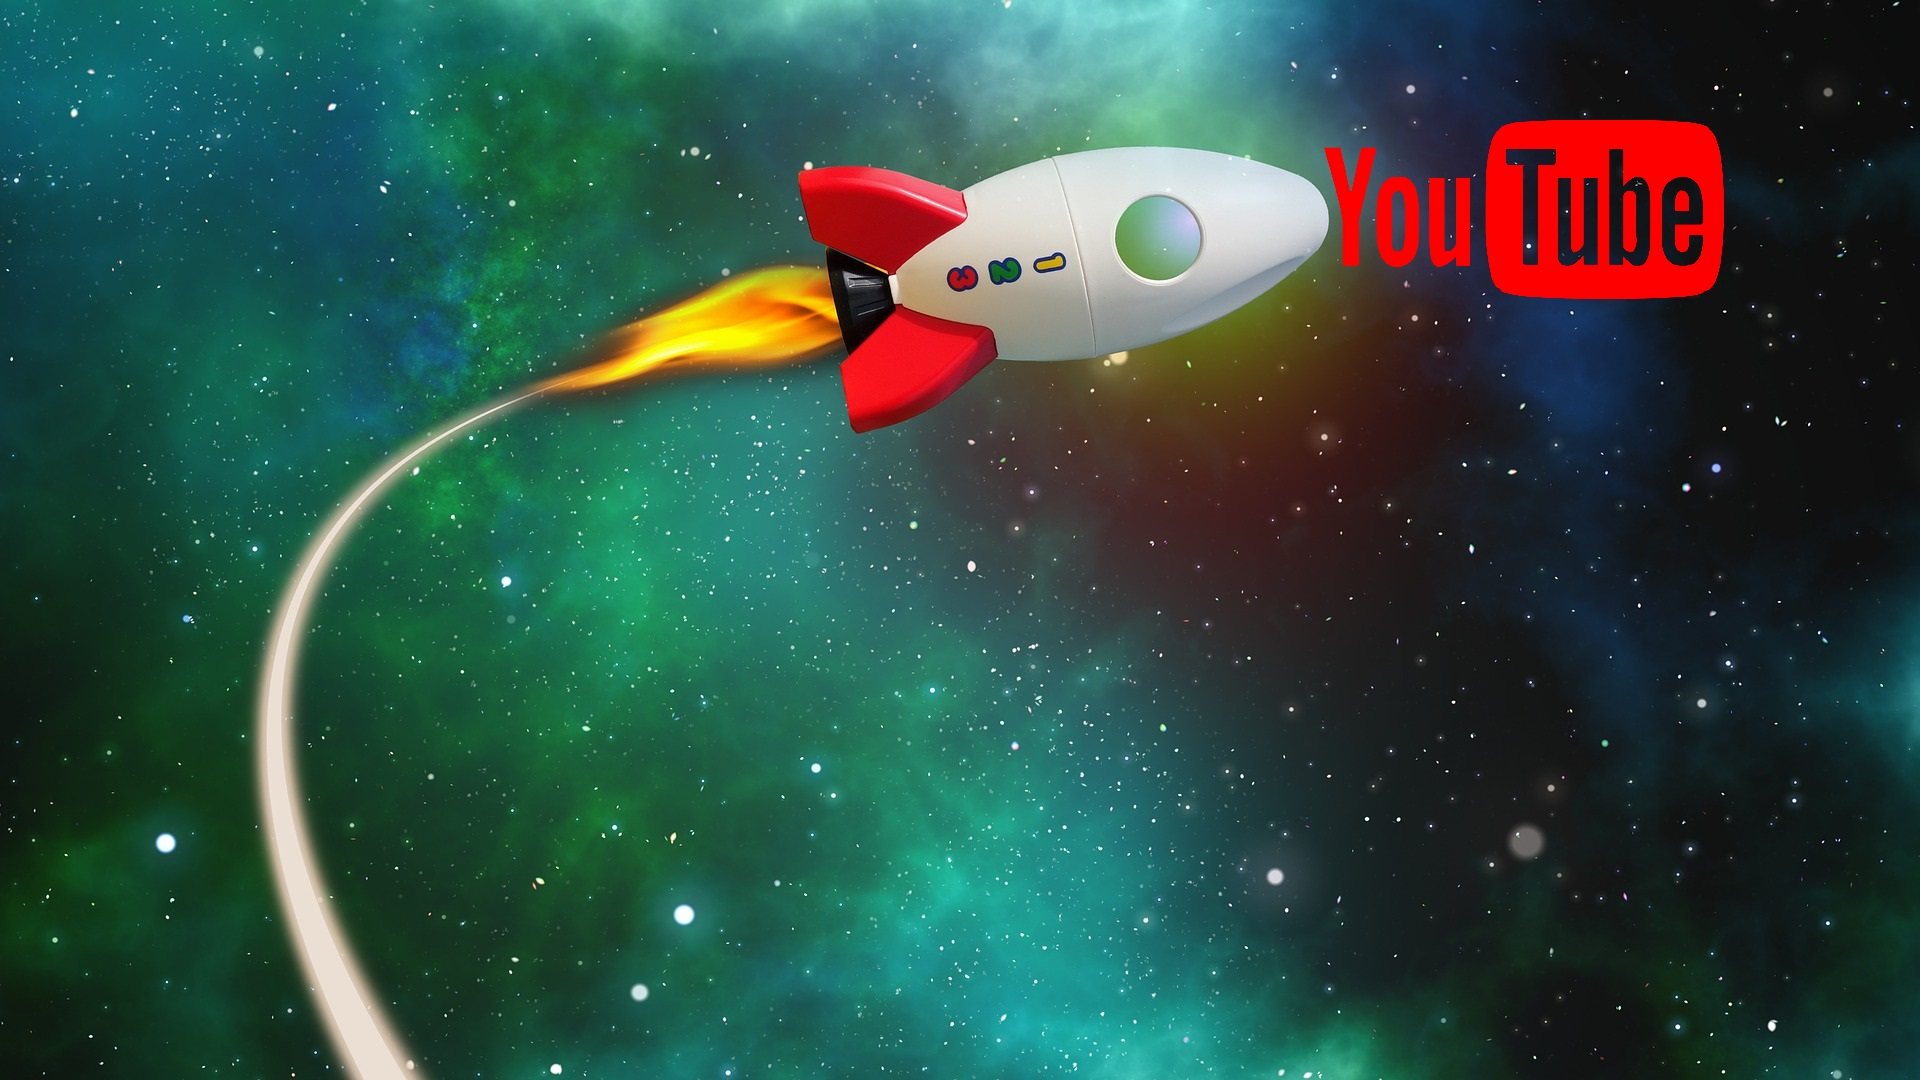 Rocket in Space with YouTube Logo